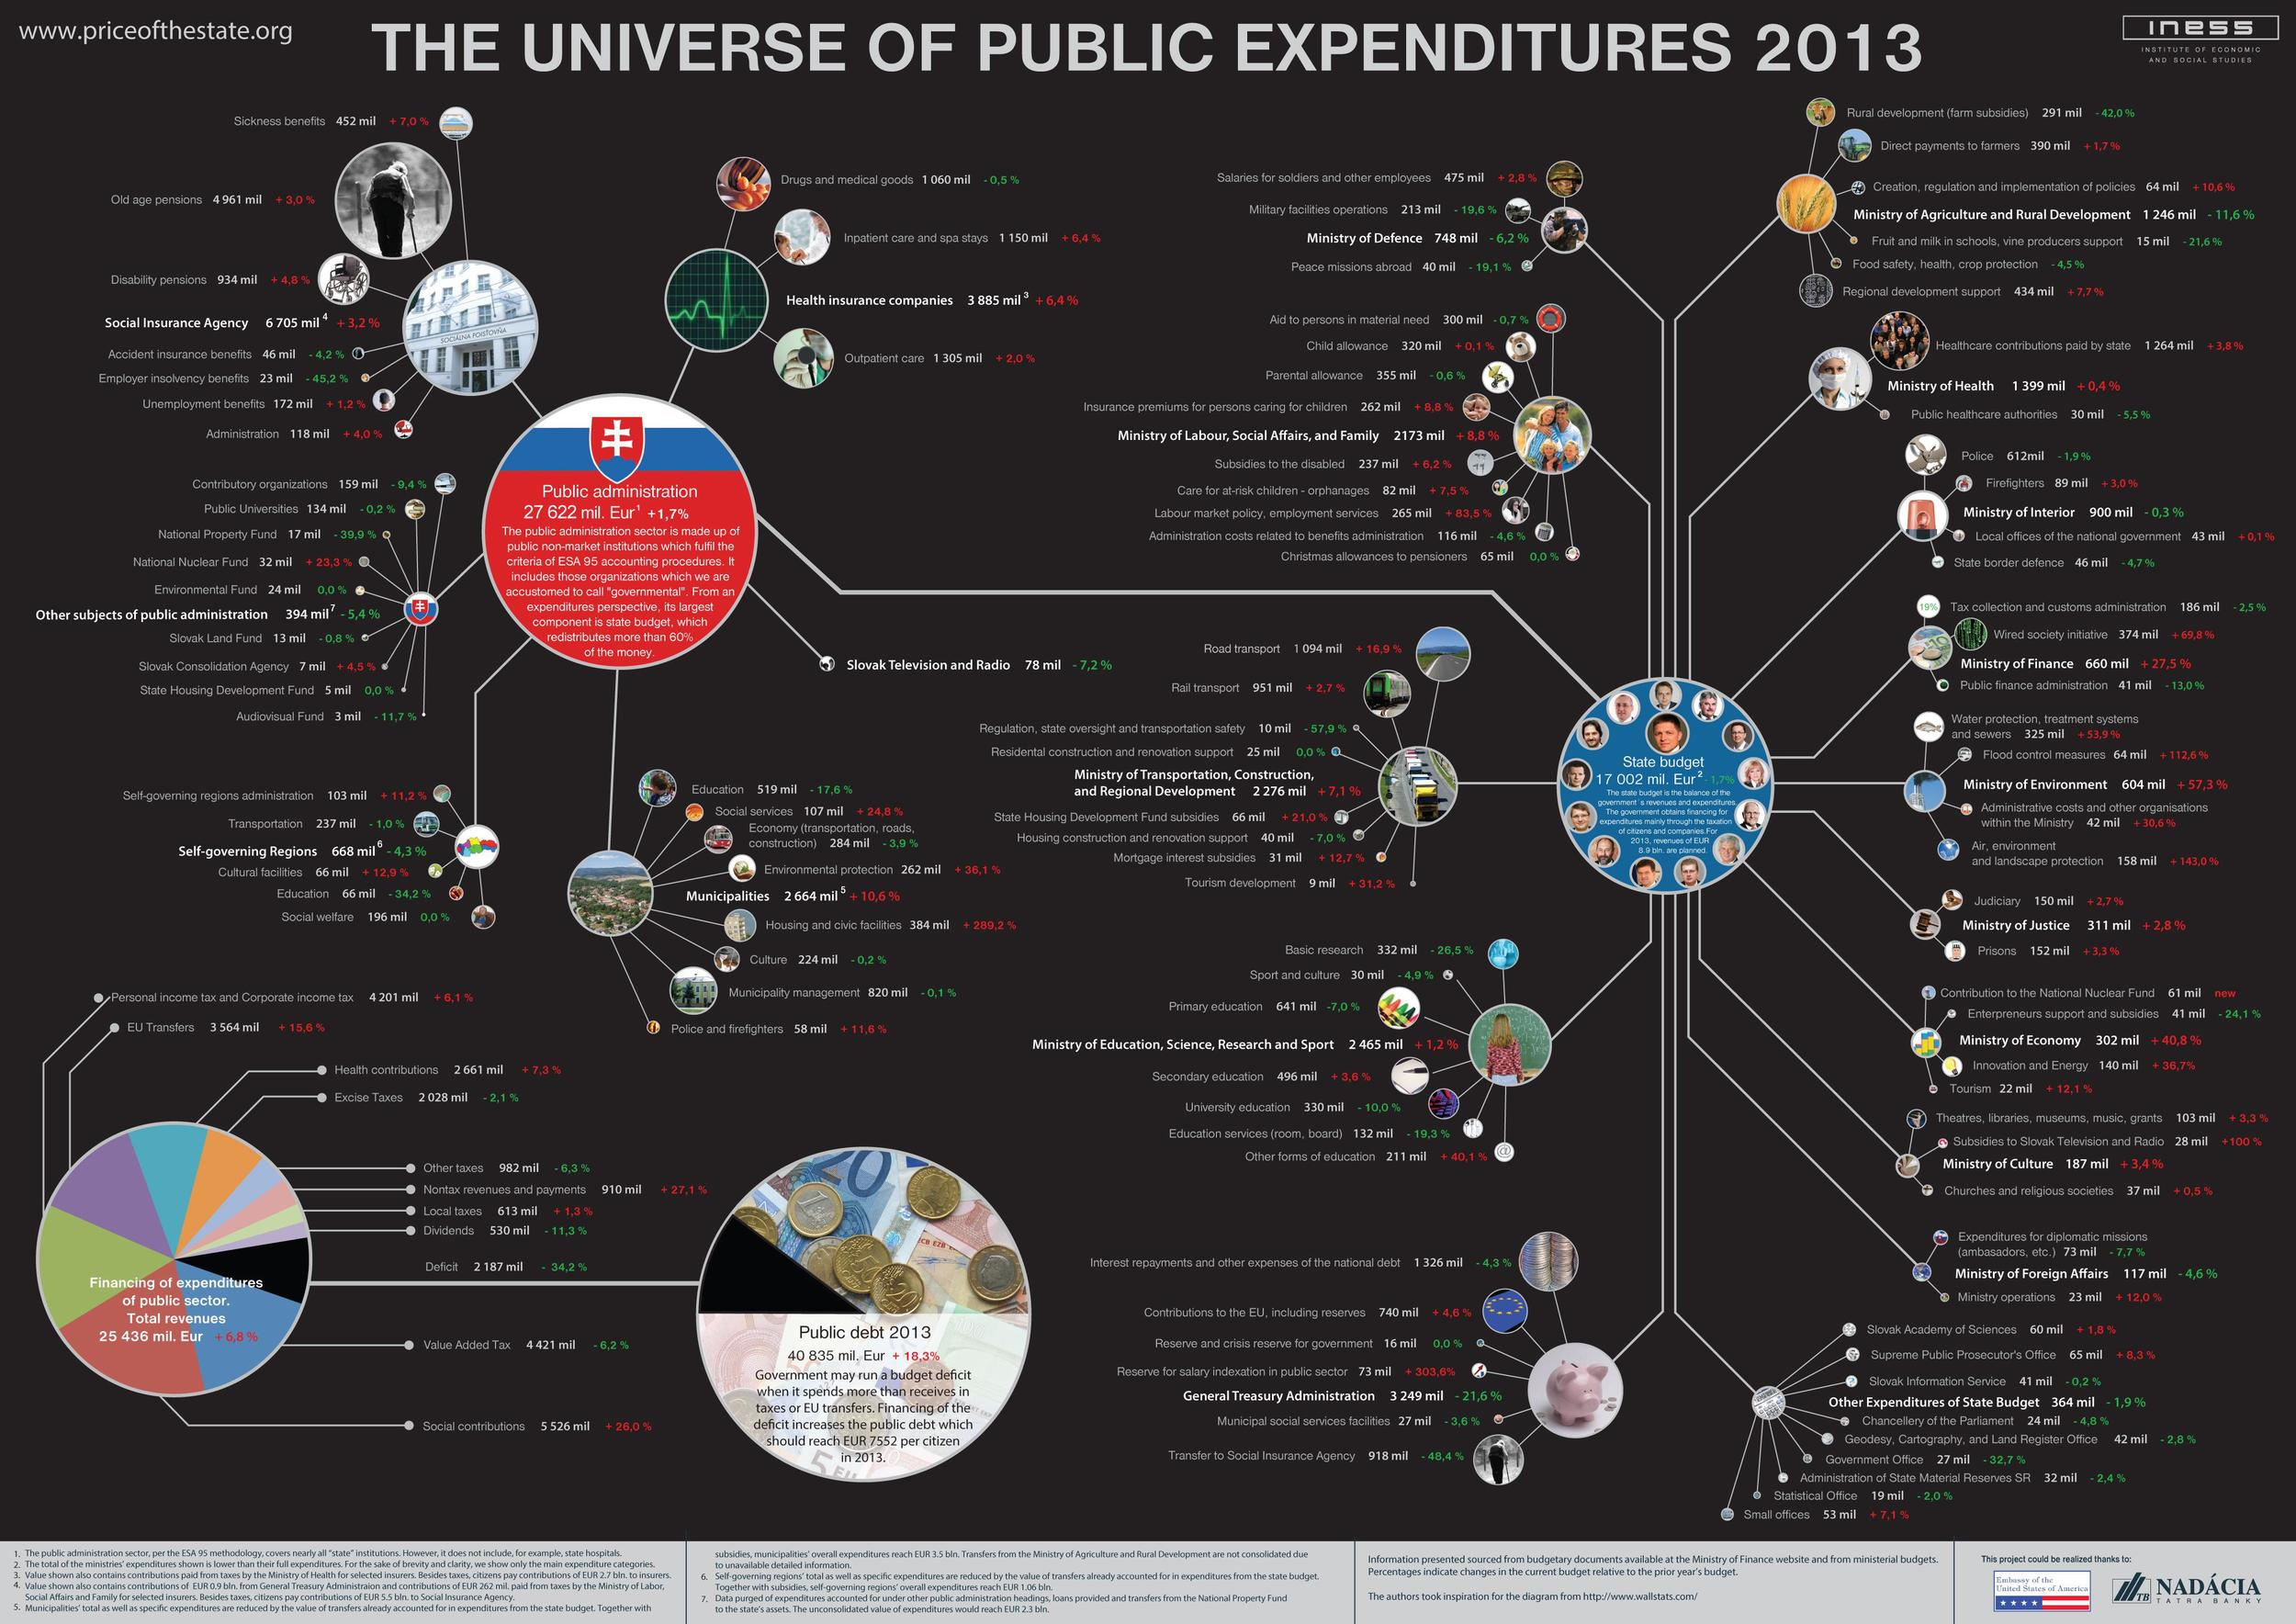 The 2013 Universe of Public Expenditures